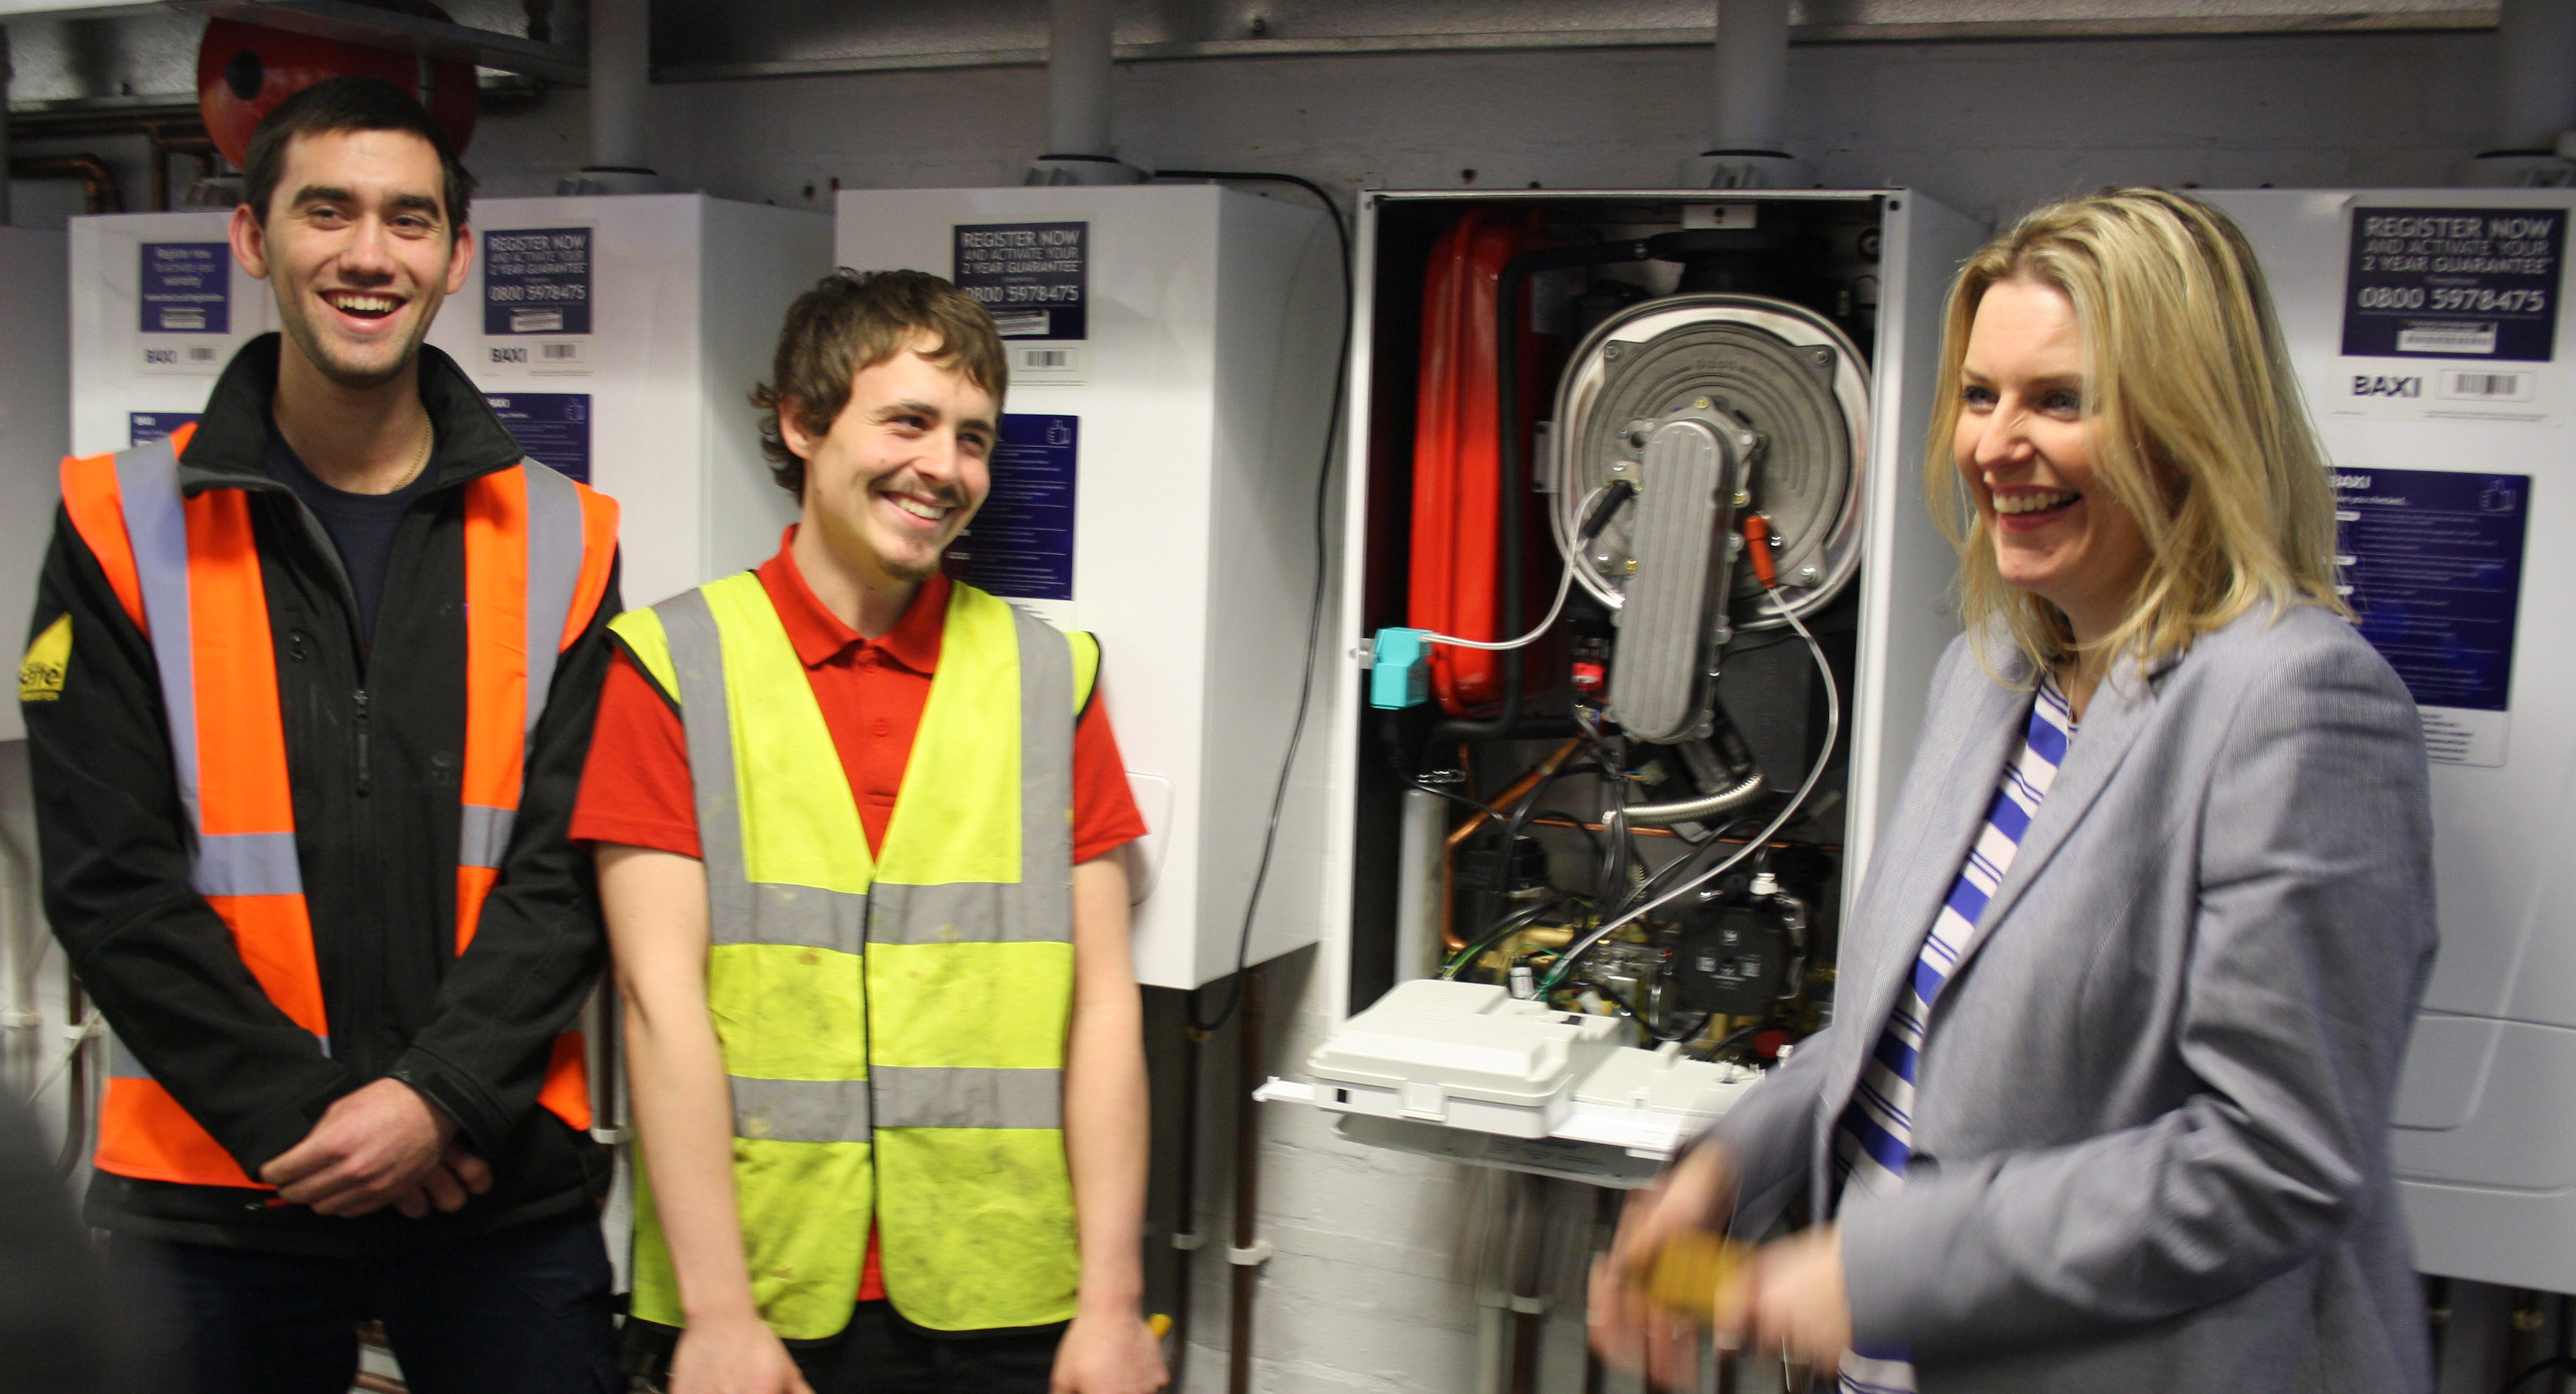 MP Mims Davies visits Eastleigh College to promote skills training